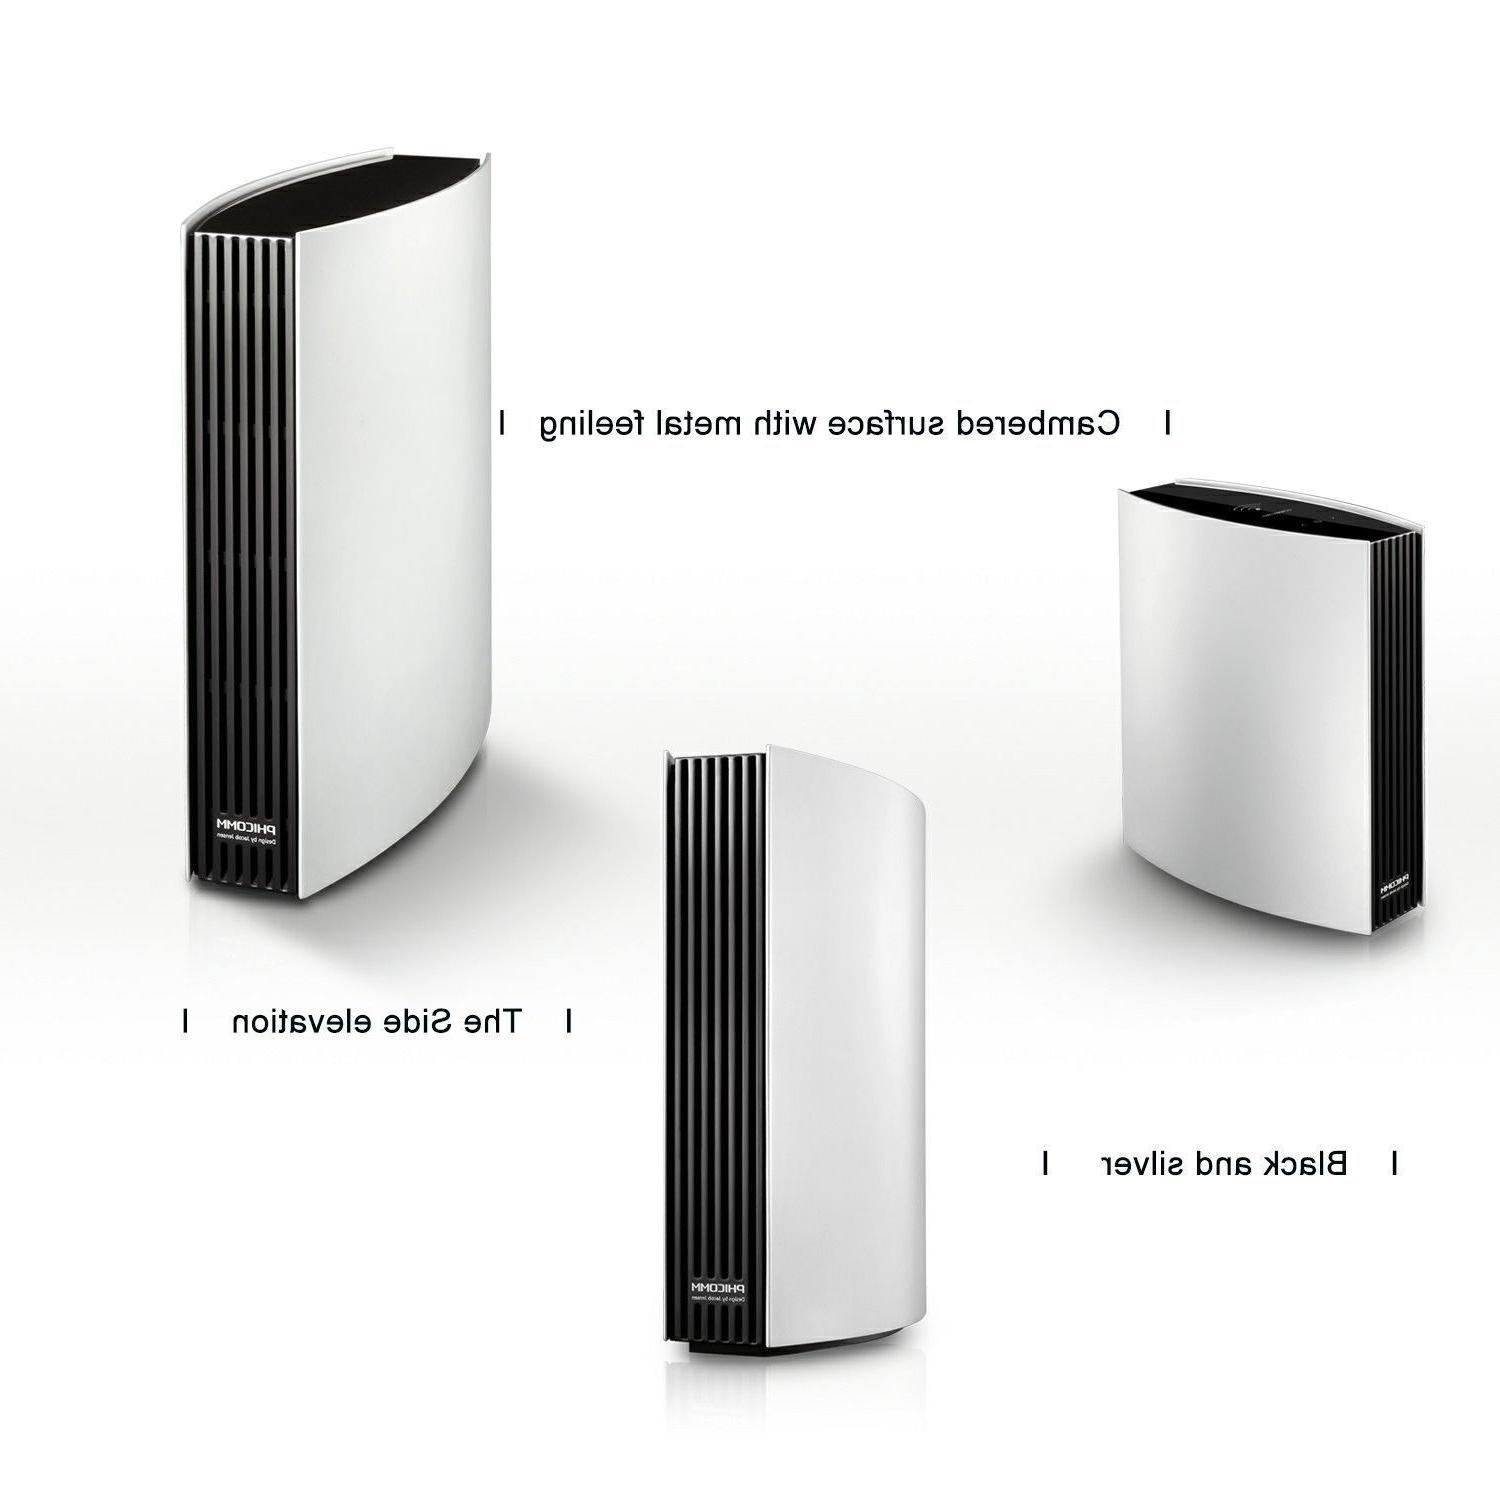 PHICOMM K3 Band Smart Router